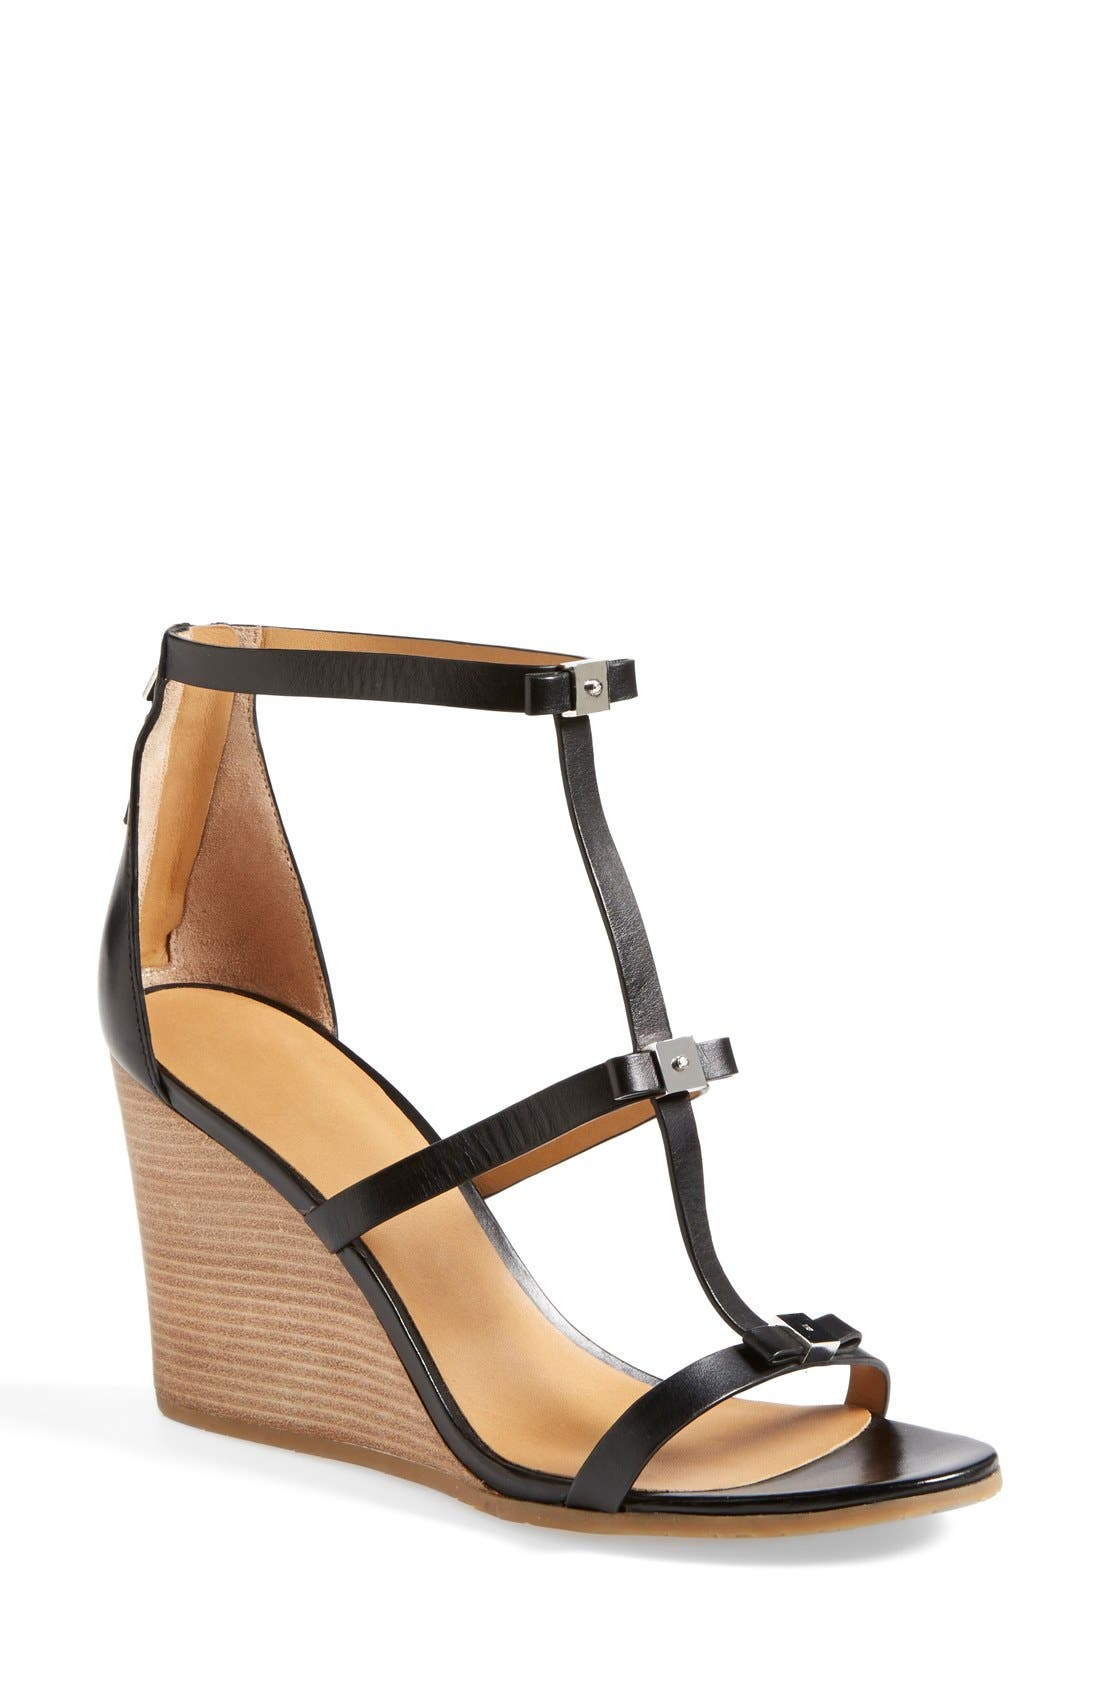 Alternate Image 1 Selected - MARC BY MARC JACOBS Cube Bow Leather Wedge Sandal (Women)